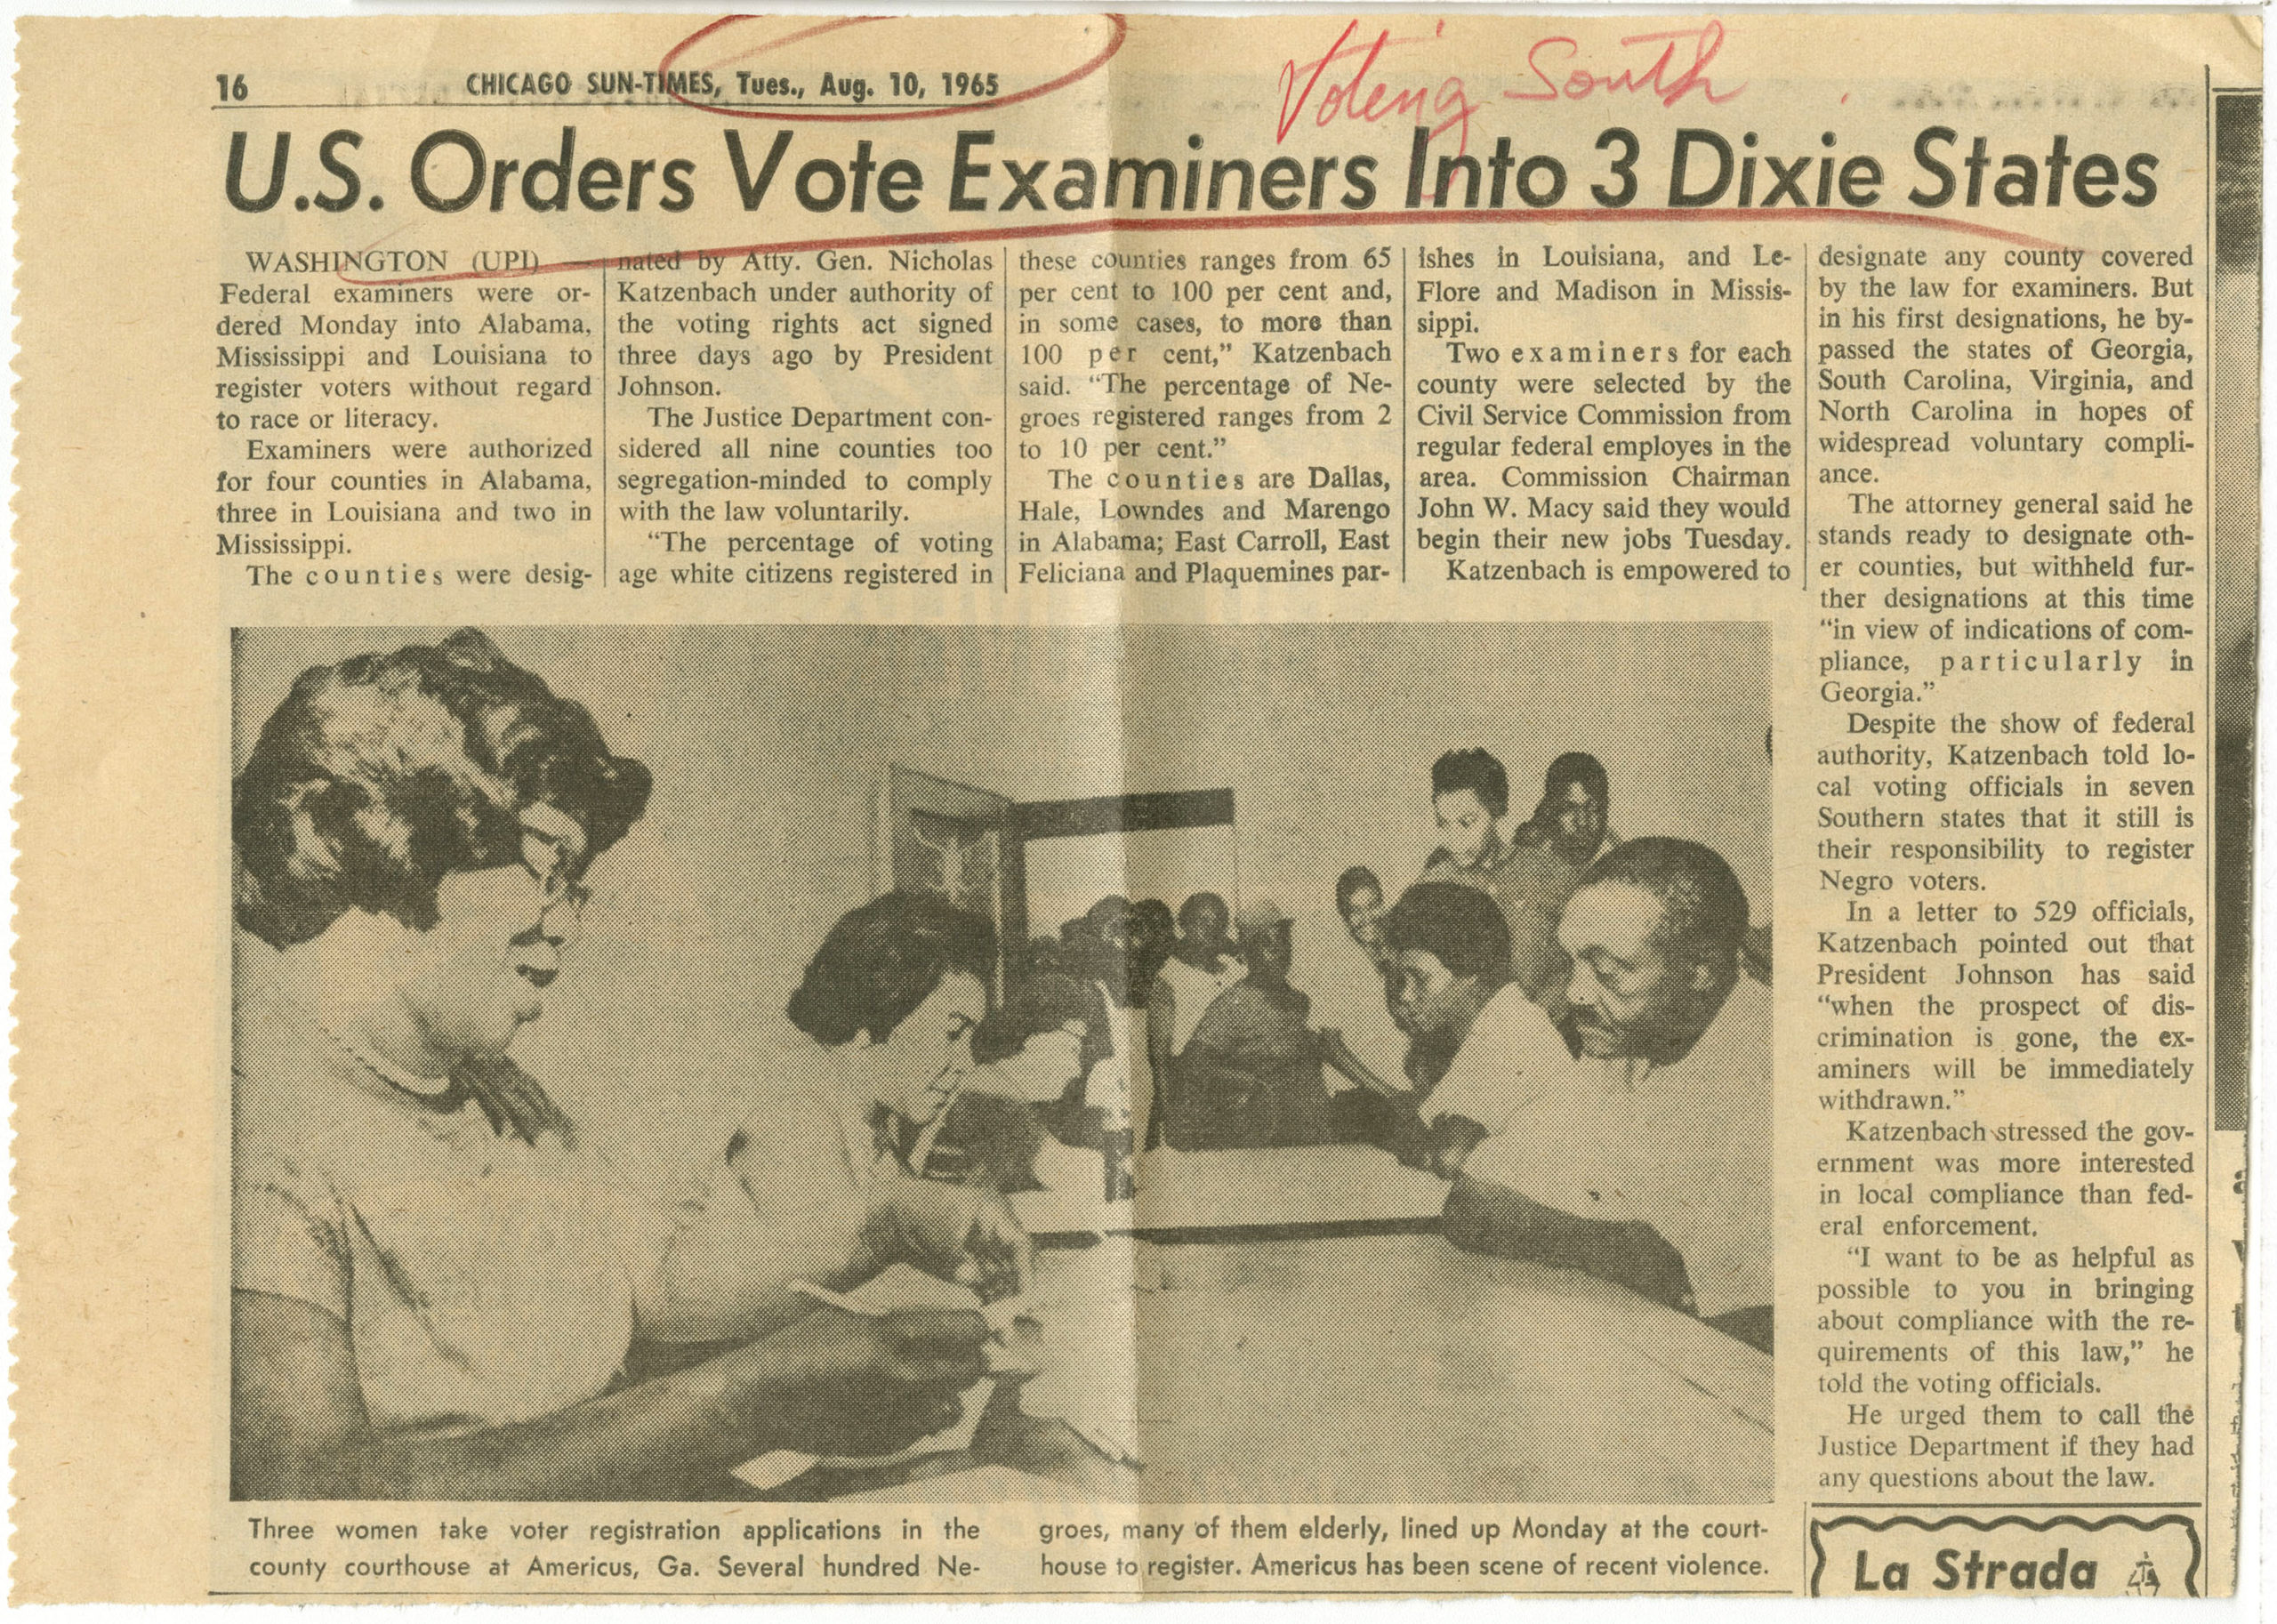 U.S. Orders Vote Examiners Into 3 Dixie States, Chicago Sun-Times1965 August 10Johnson Publishing Company Clippings File Collection